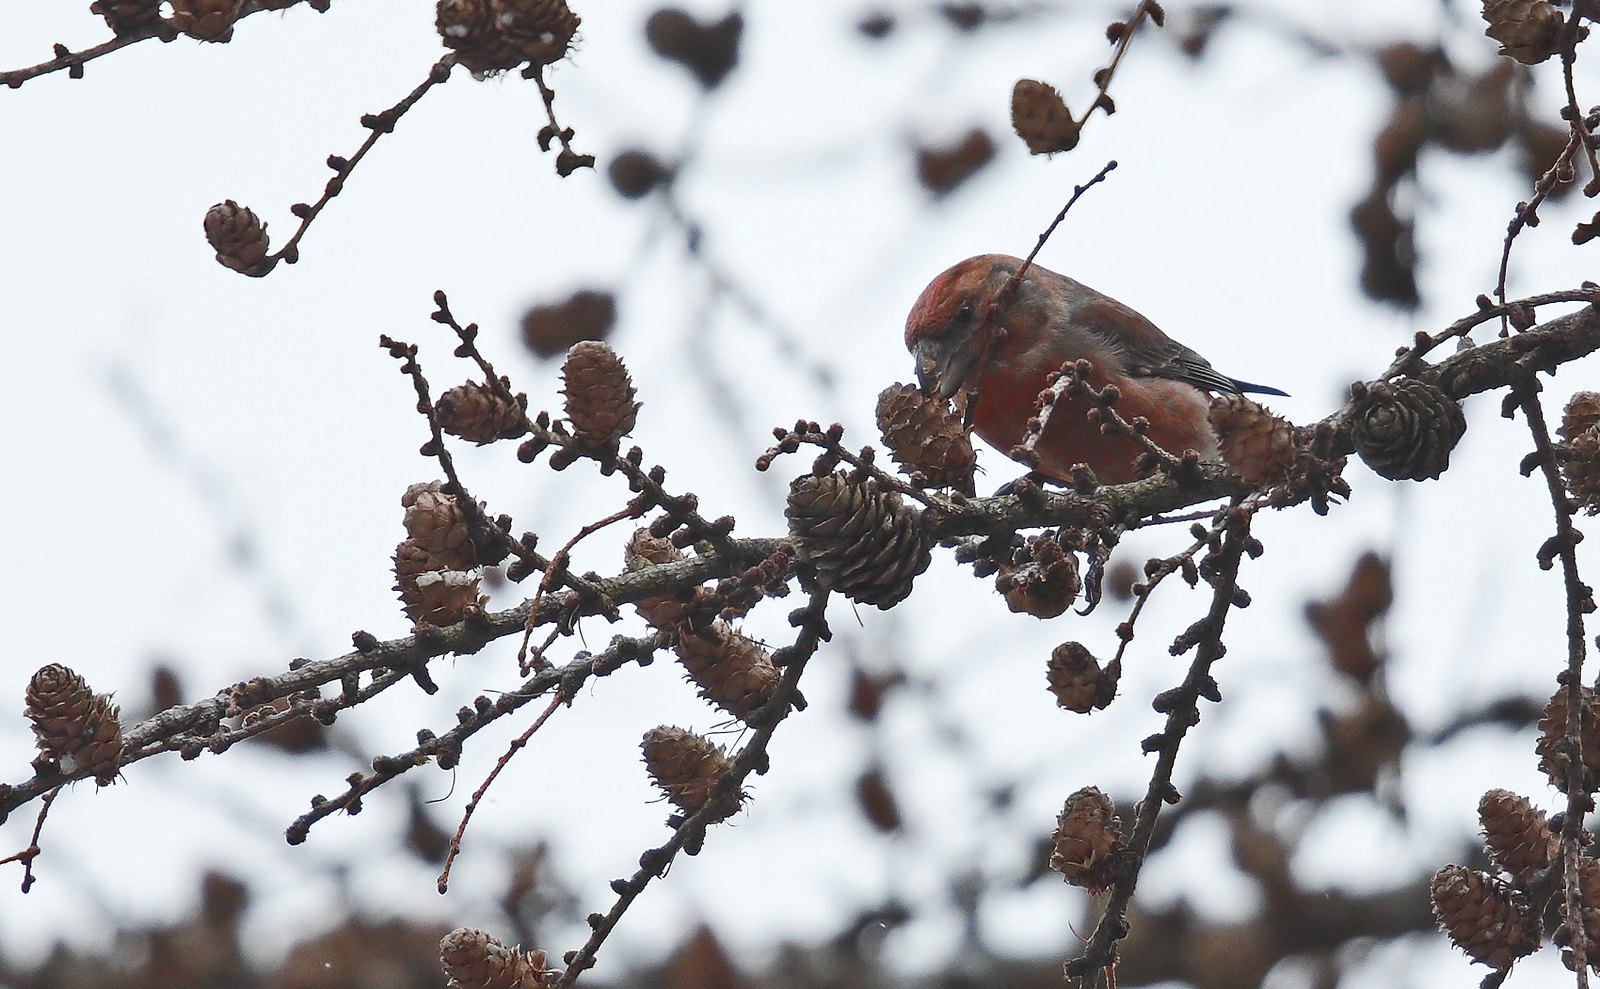 Parrot Crossbill - very challenging conditions!